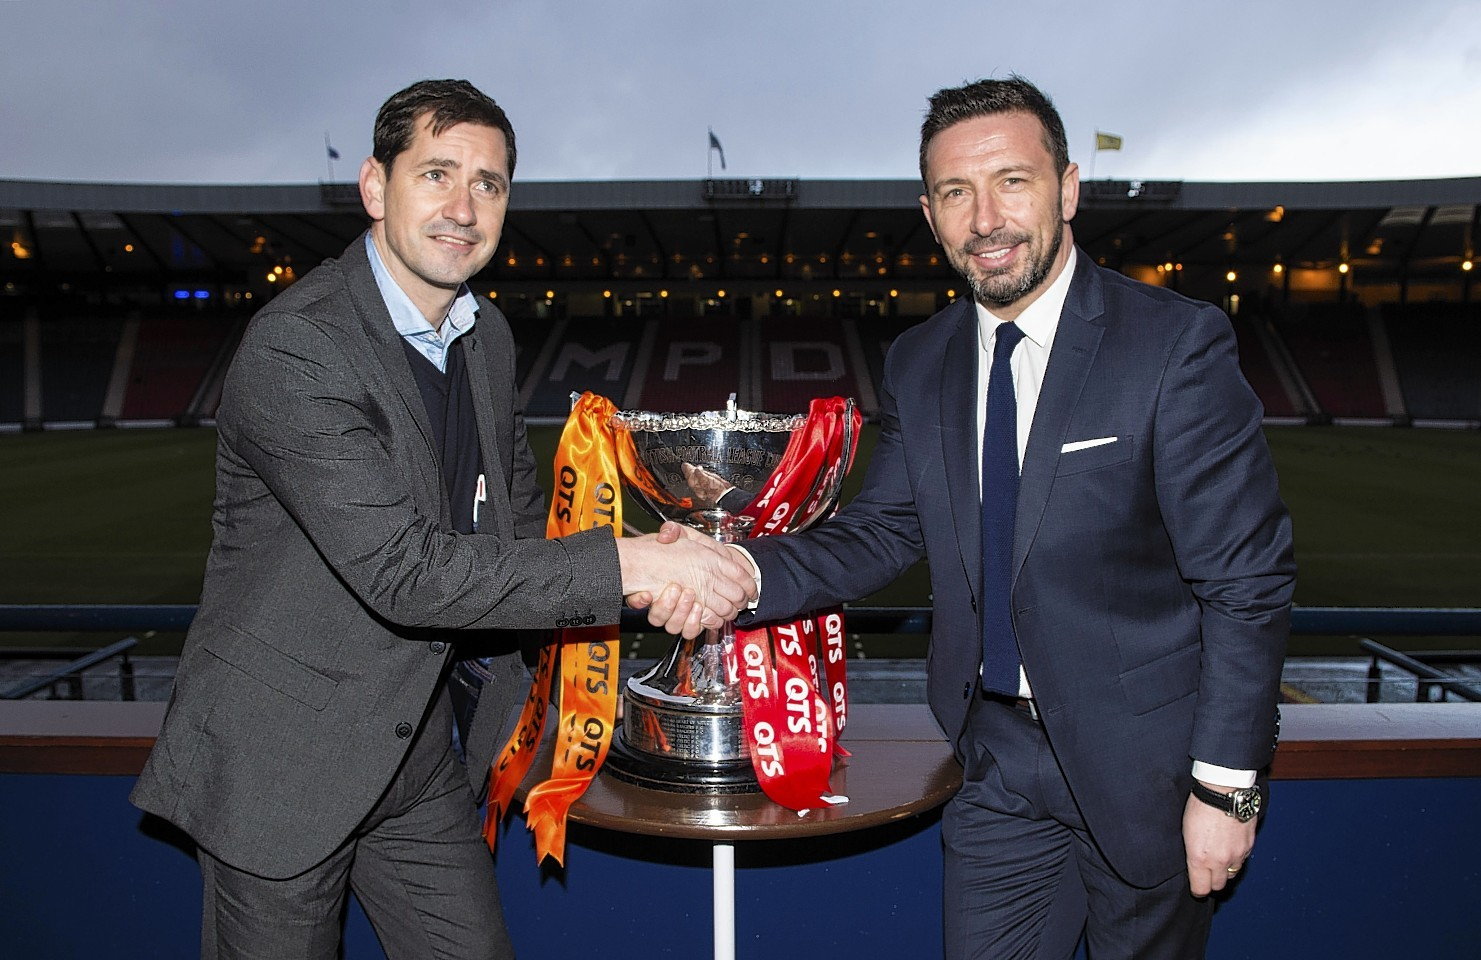 Our reporters in the office have helped McNamara and McInnes by picking the teams for Saturday